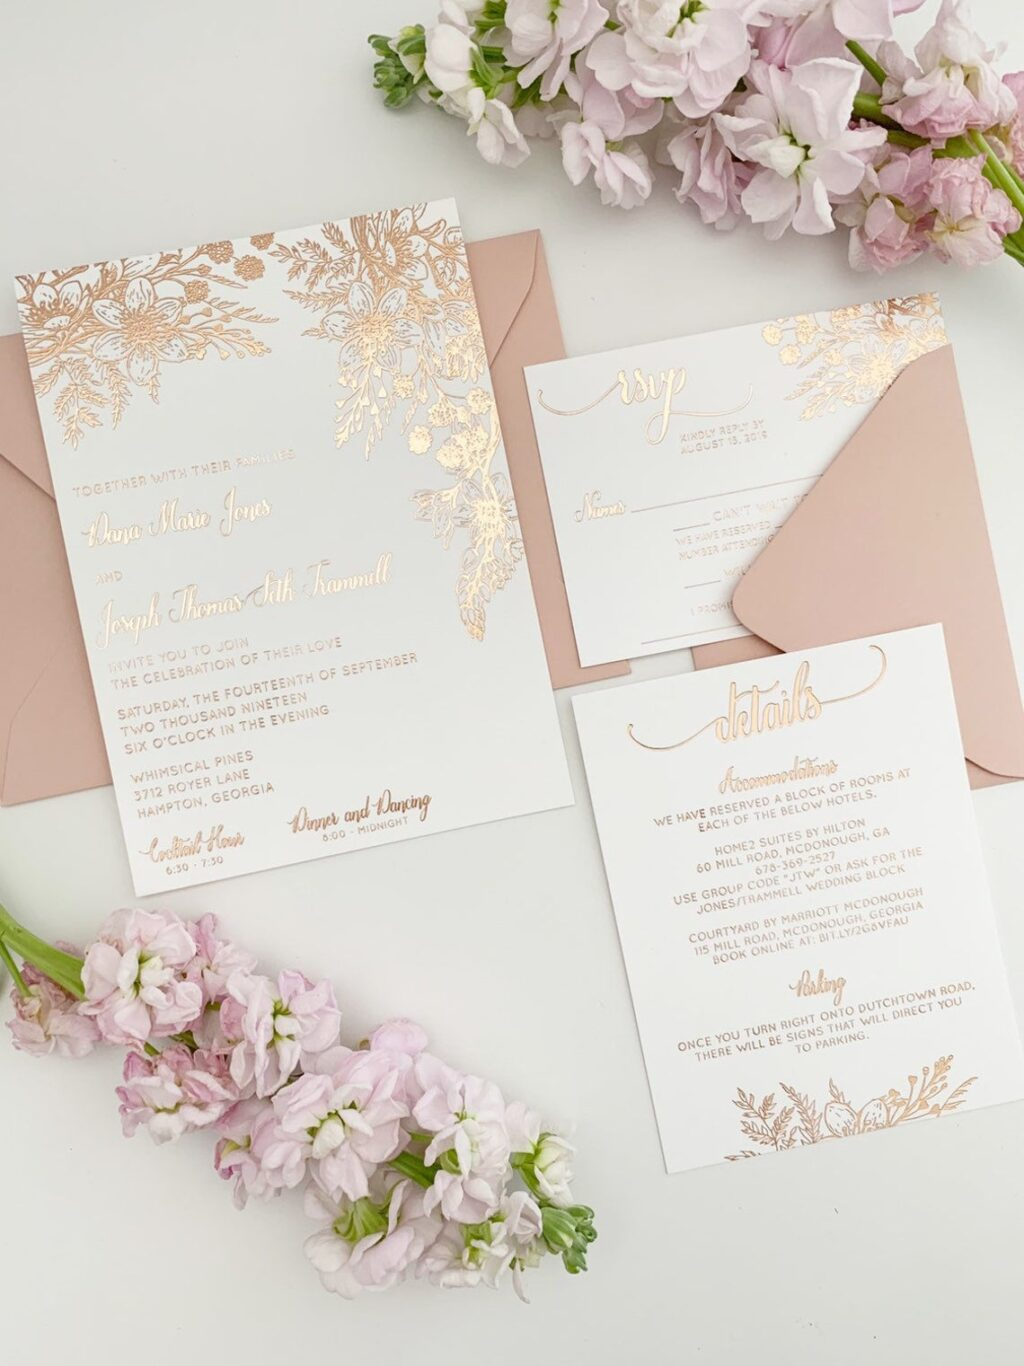 Pink and gold invitations for a romantic wedding